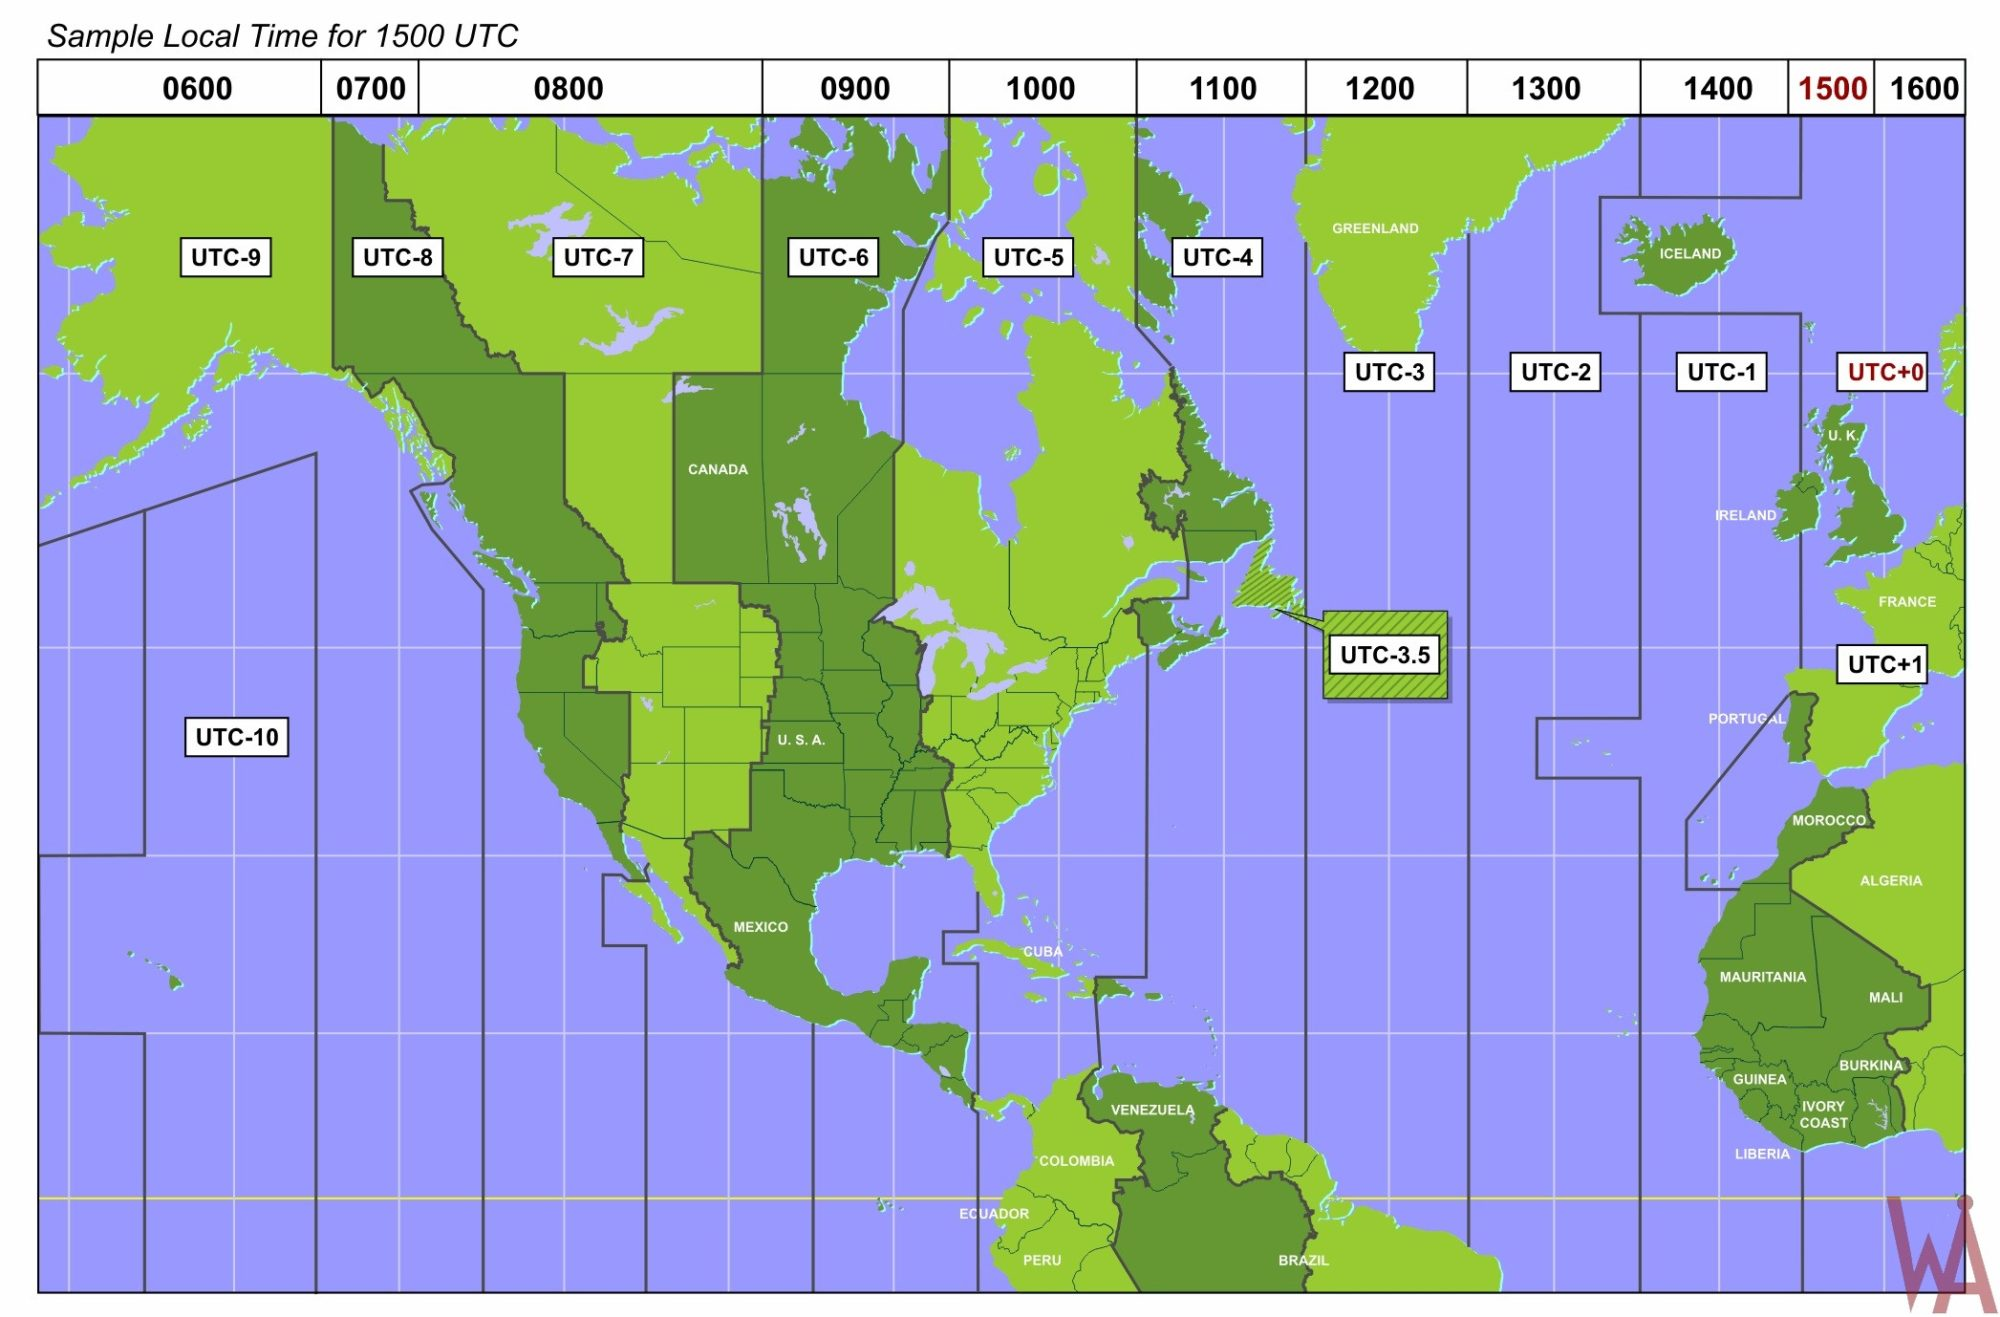 Detail Time Zone Map of North America